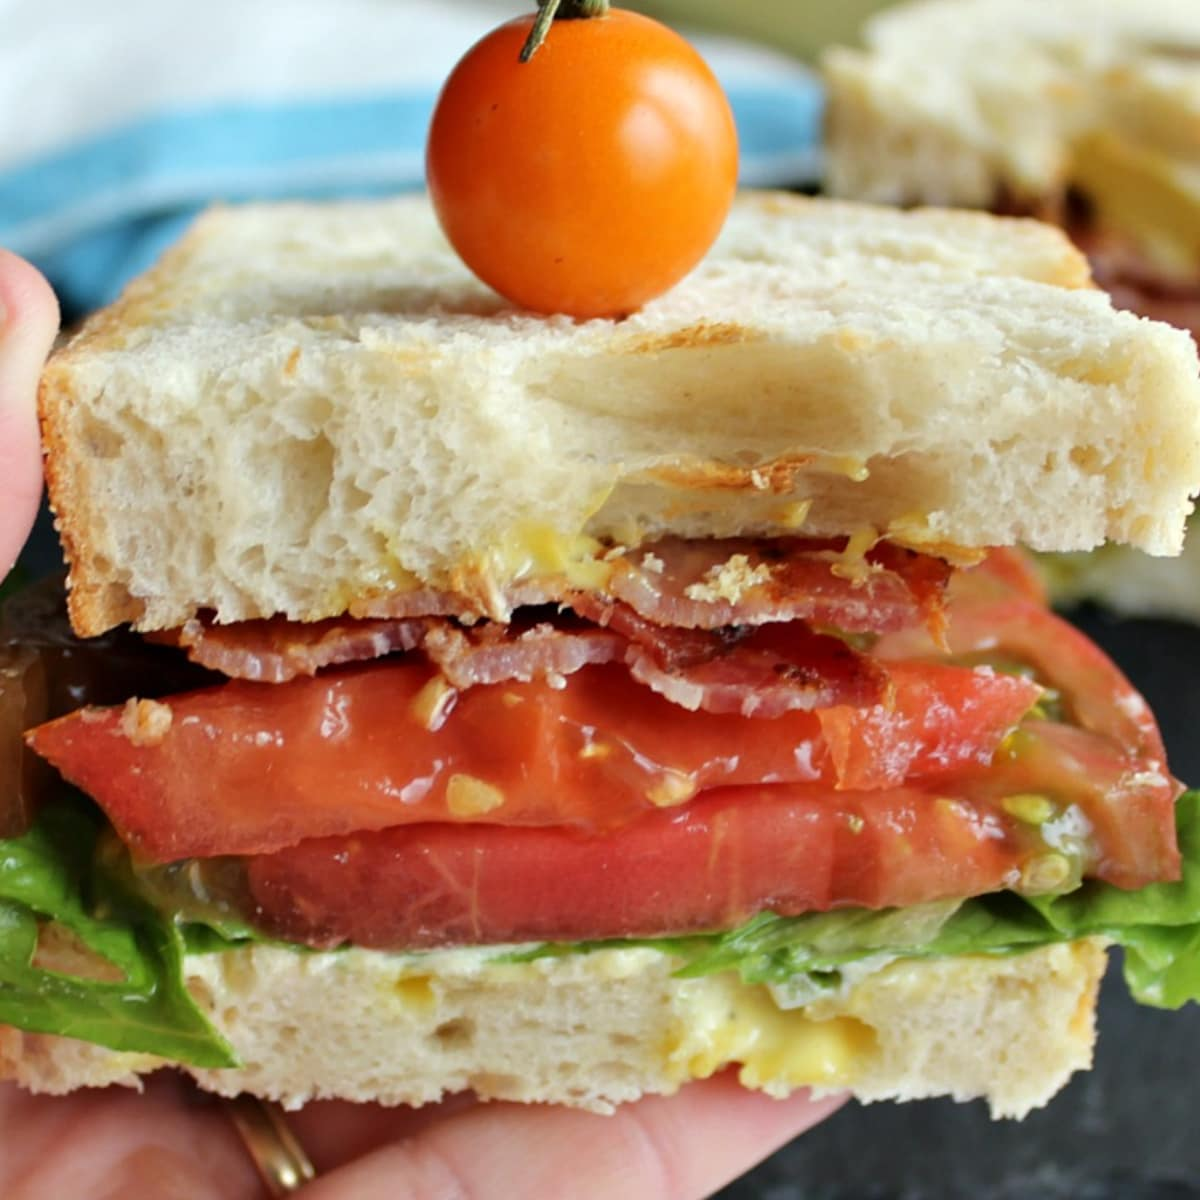 White bread sandwich with tomato and lettuce in a hand